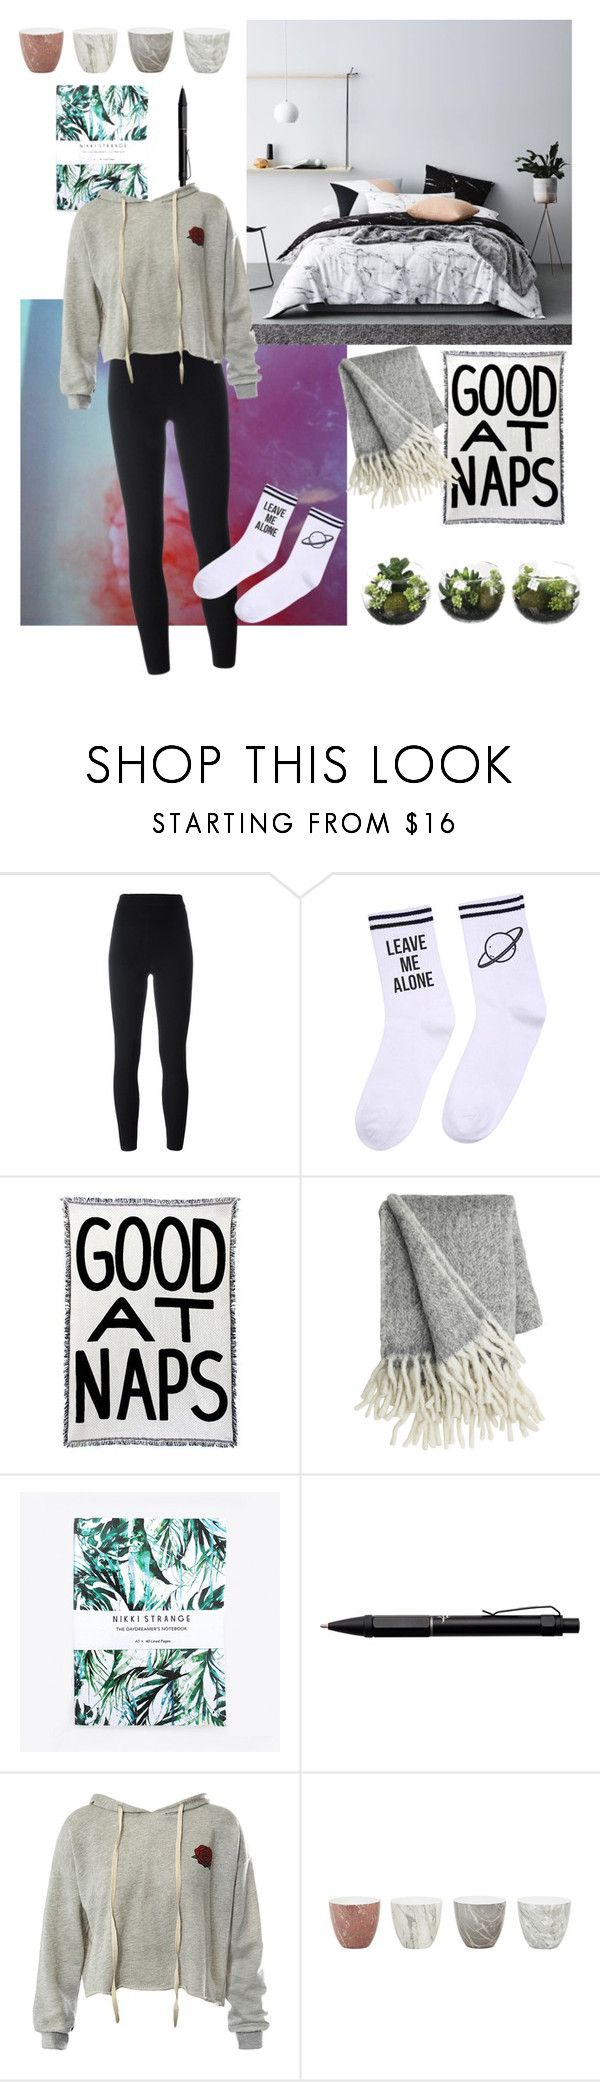 """""""good habits"""" by ginevra15 ❤ liked on Polyvore featuring Yeezy by Kanye West, Yeah Bunny, Nikki Strange, Fisher Space Pen, Sans Souci and Jayson Home"""